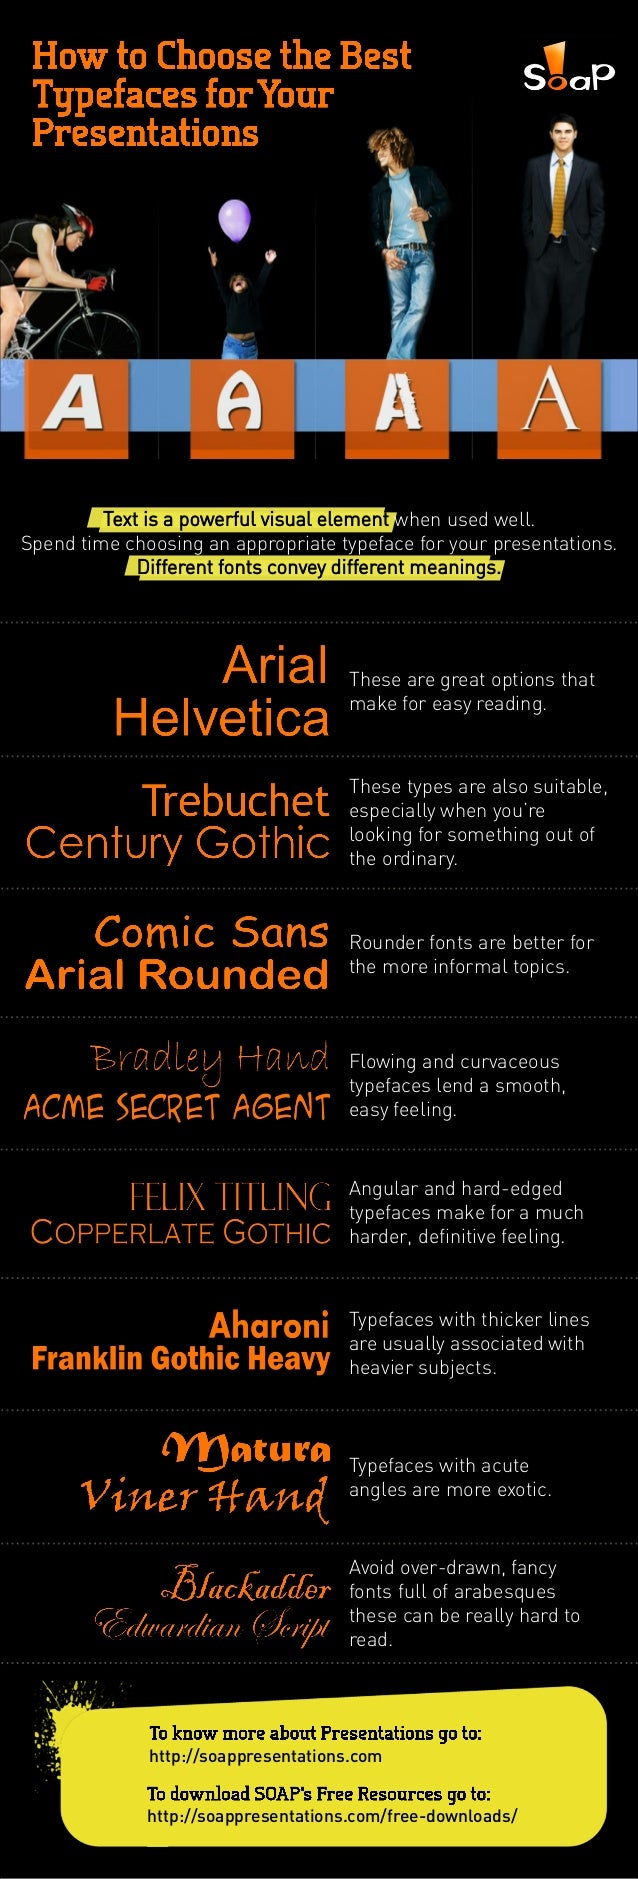 How to Choose the Best Typefaces for Your Presentations